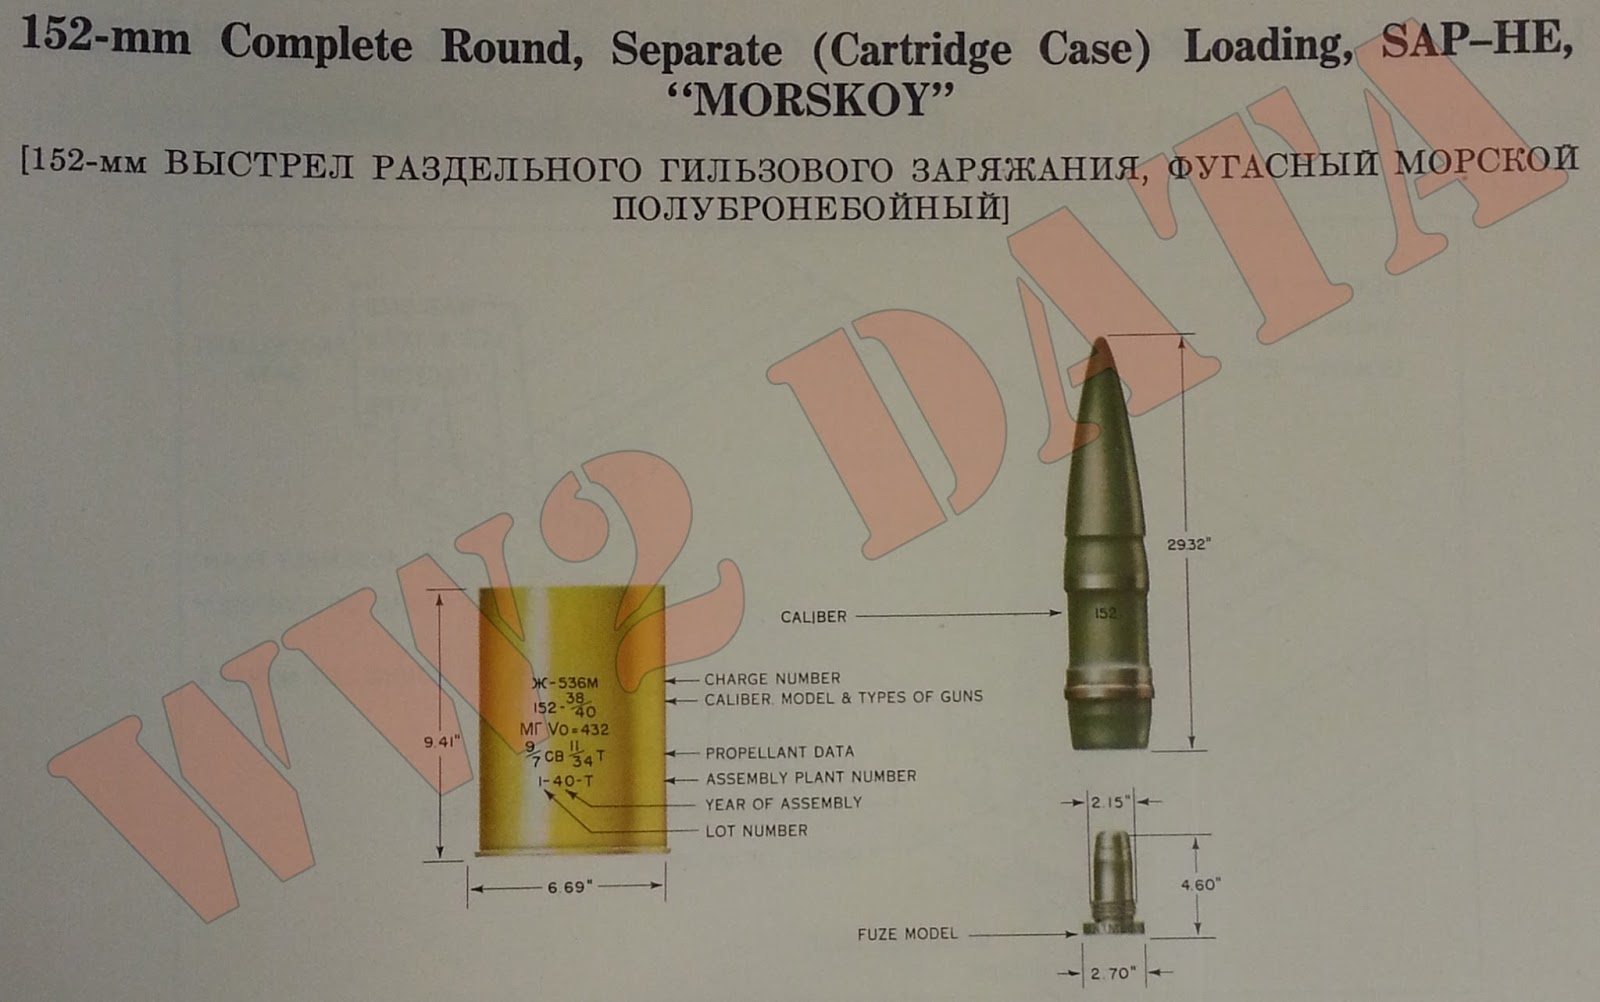 WW2 Equipment Data: Soviet Explosive Ordnance - 152mm and